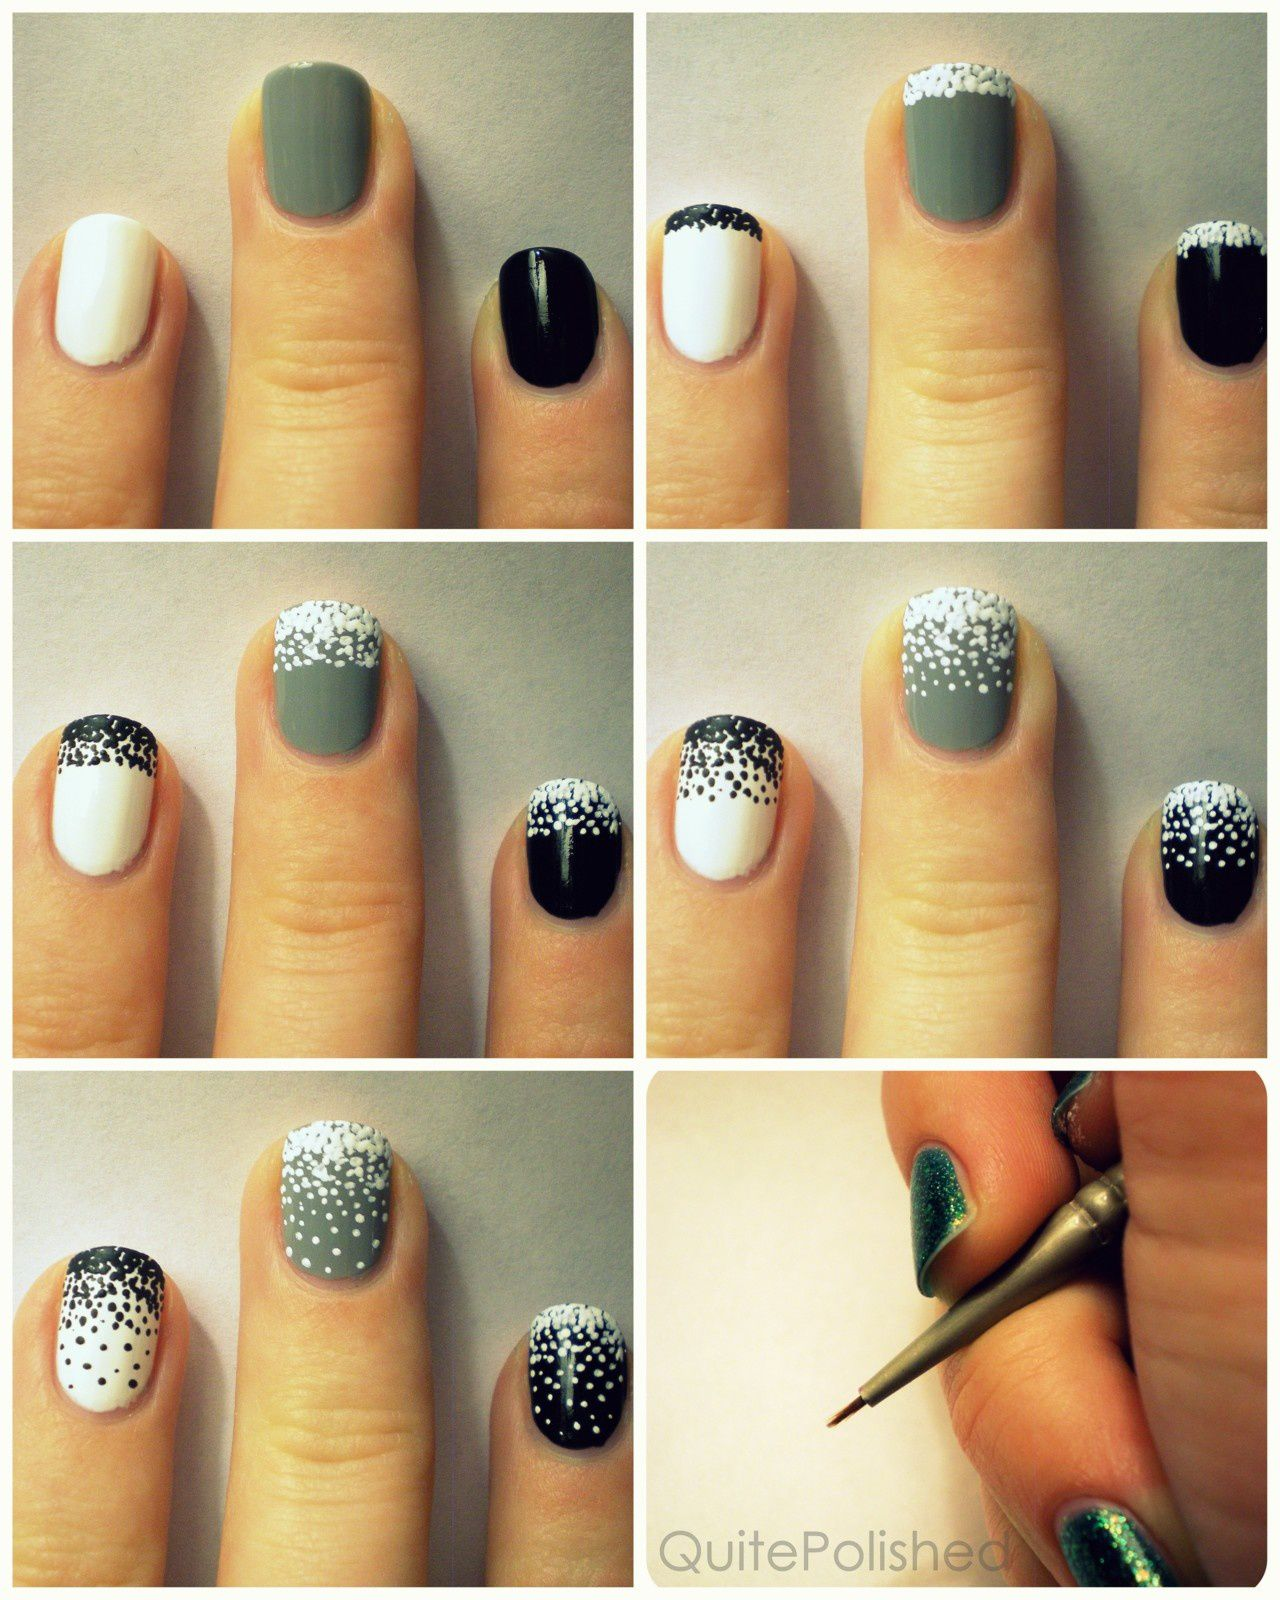 Nail art tutorial - dotter - All Tube and MakeUp